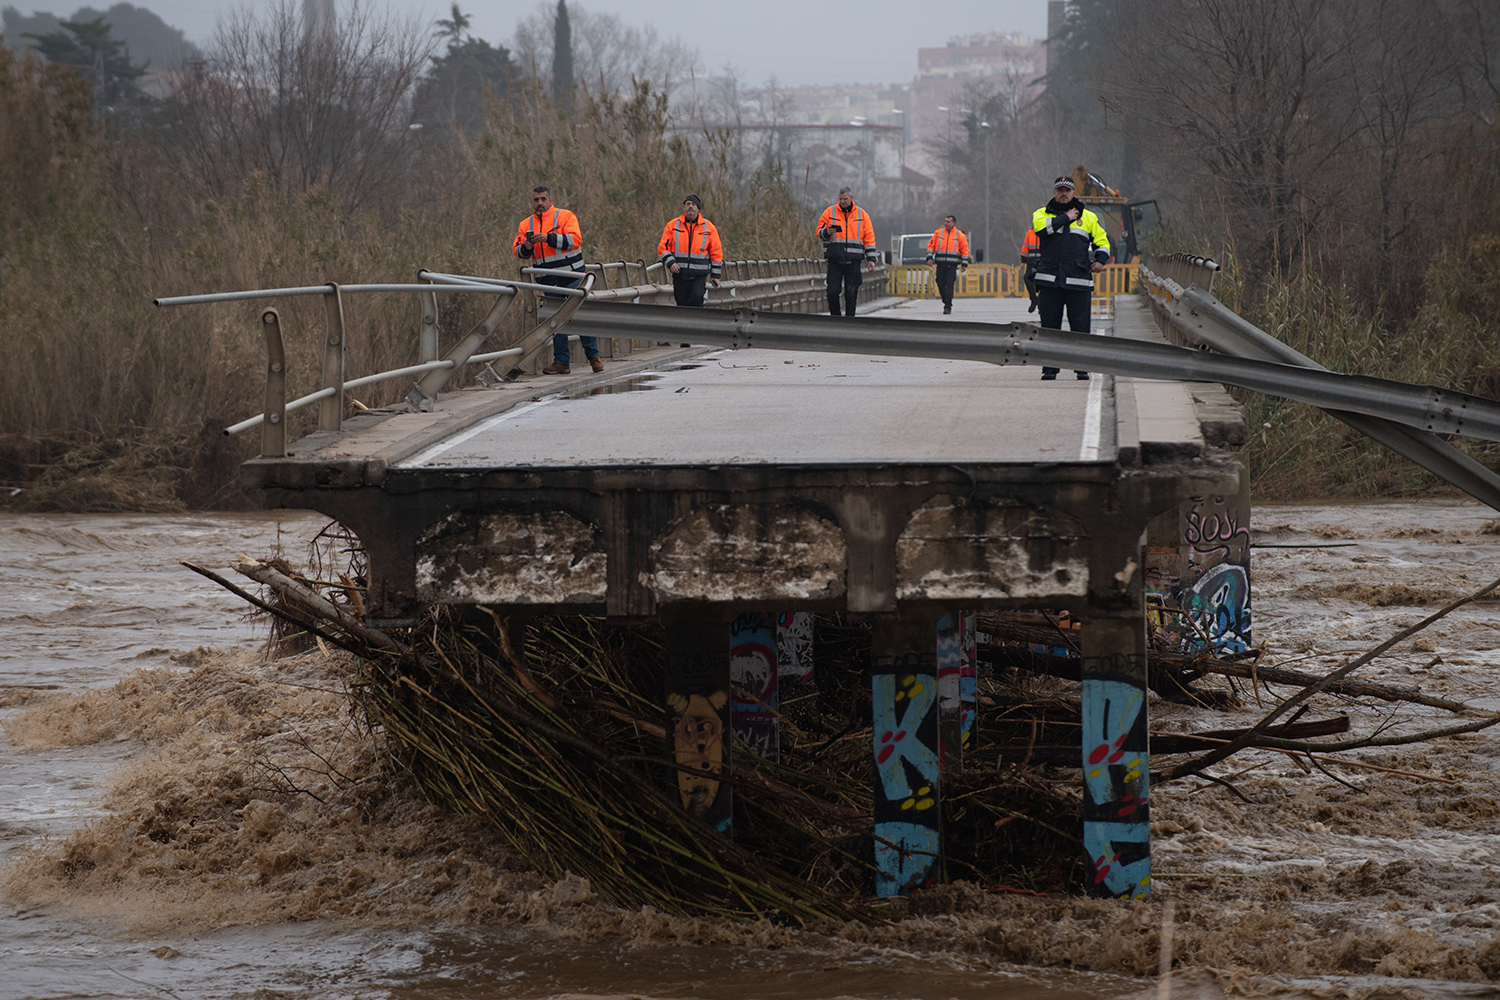 Policemen and security members walk on a fallen bridge in Malgrat de Mar near Girona, Spain, on Jan. 22. A winter storm has battered Spain's eastern coast, killing three people, cutting power, closing schools, and severing road and rail links. JOSEP LAGO/AFP via Getty Images